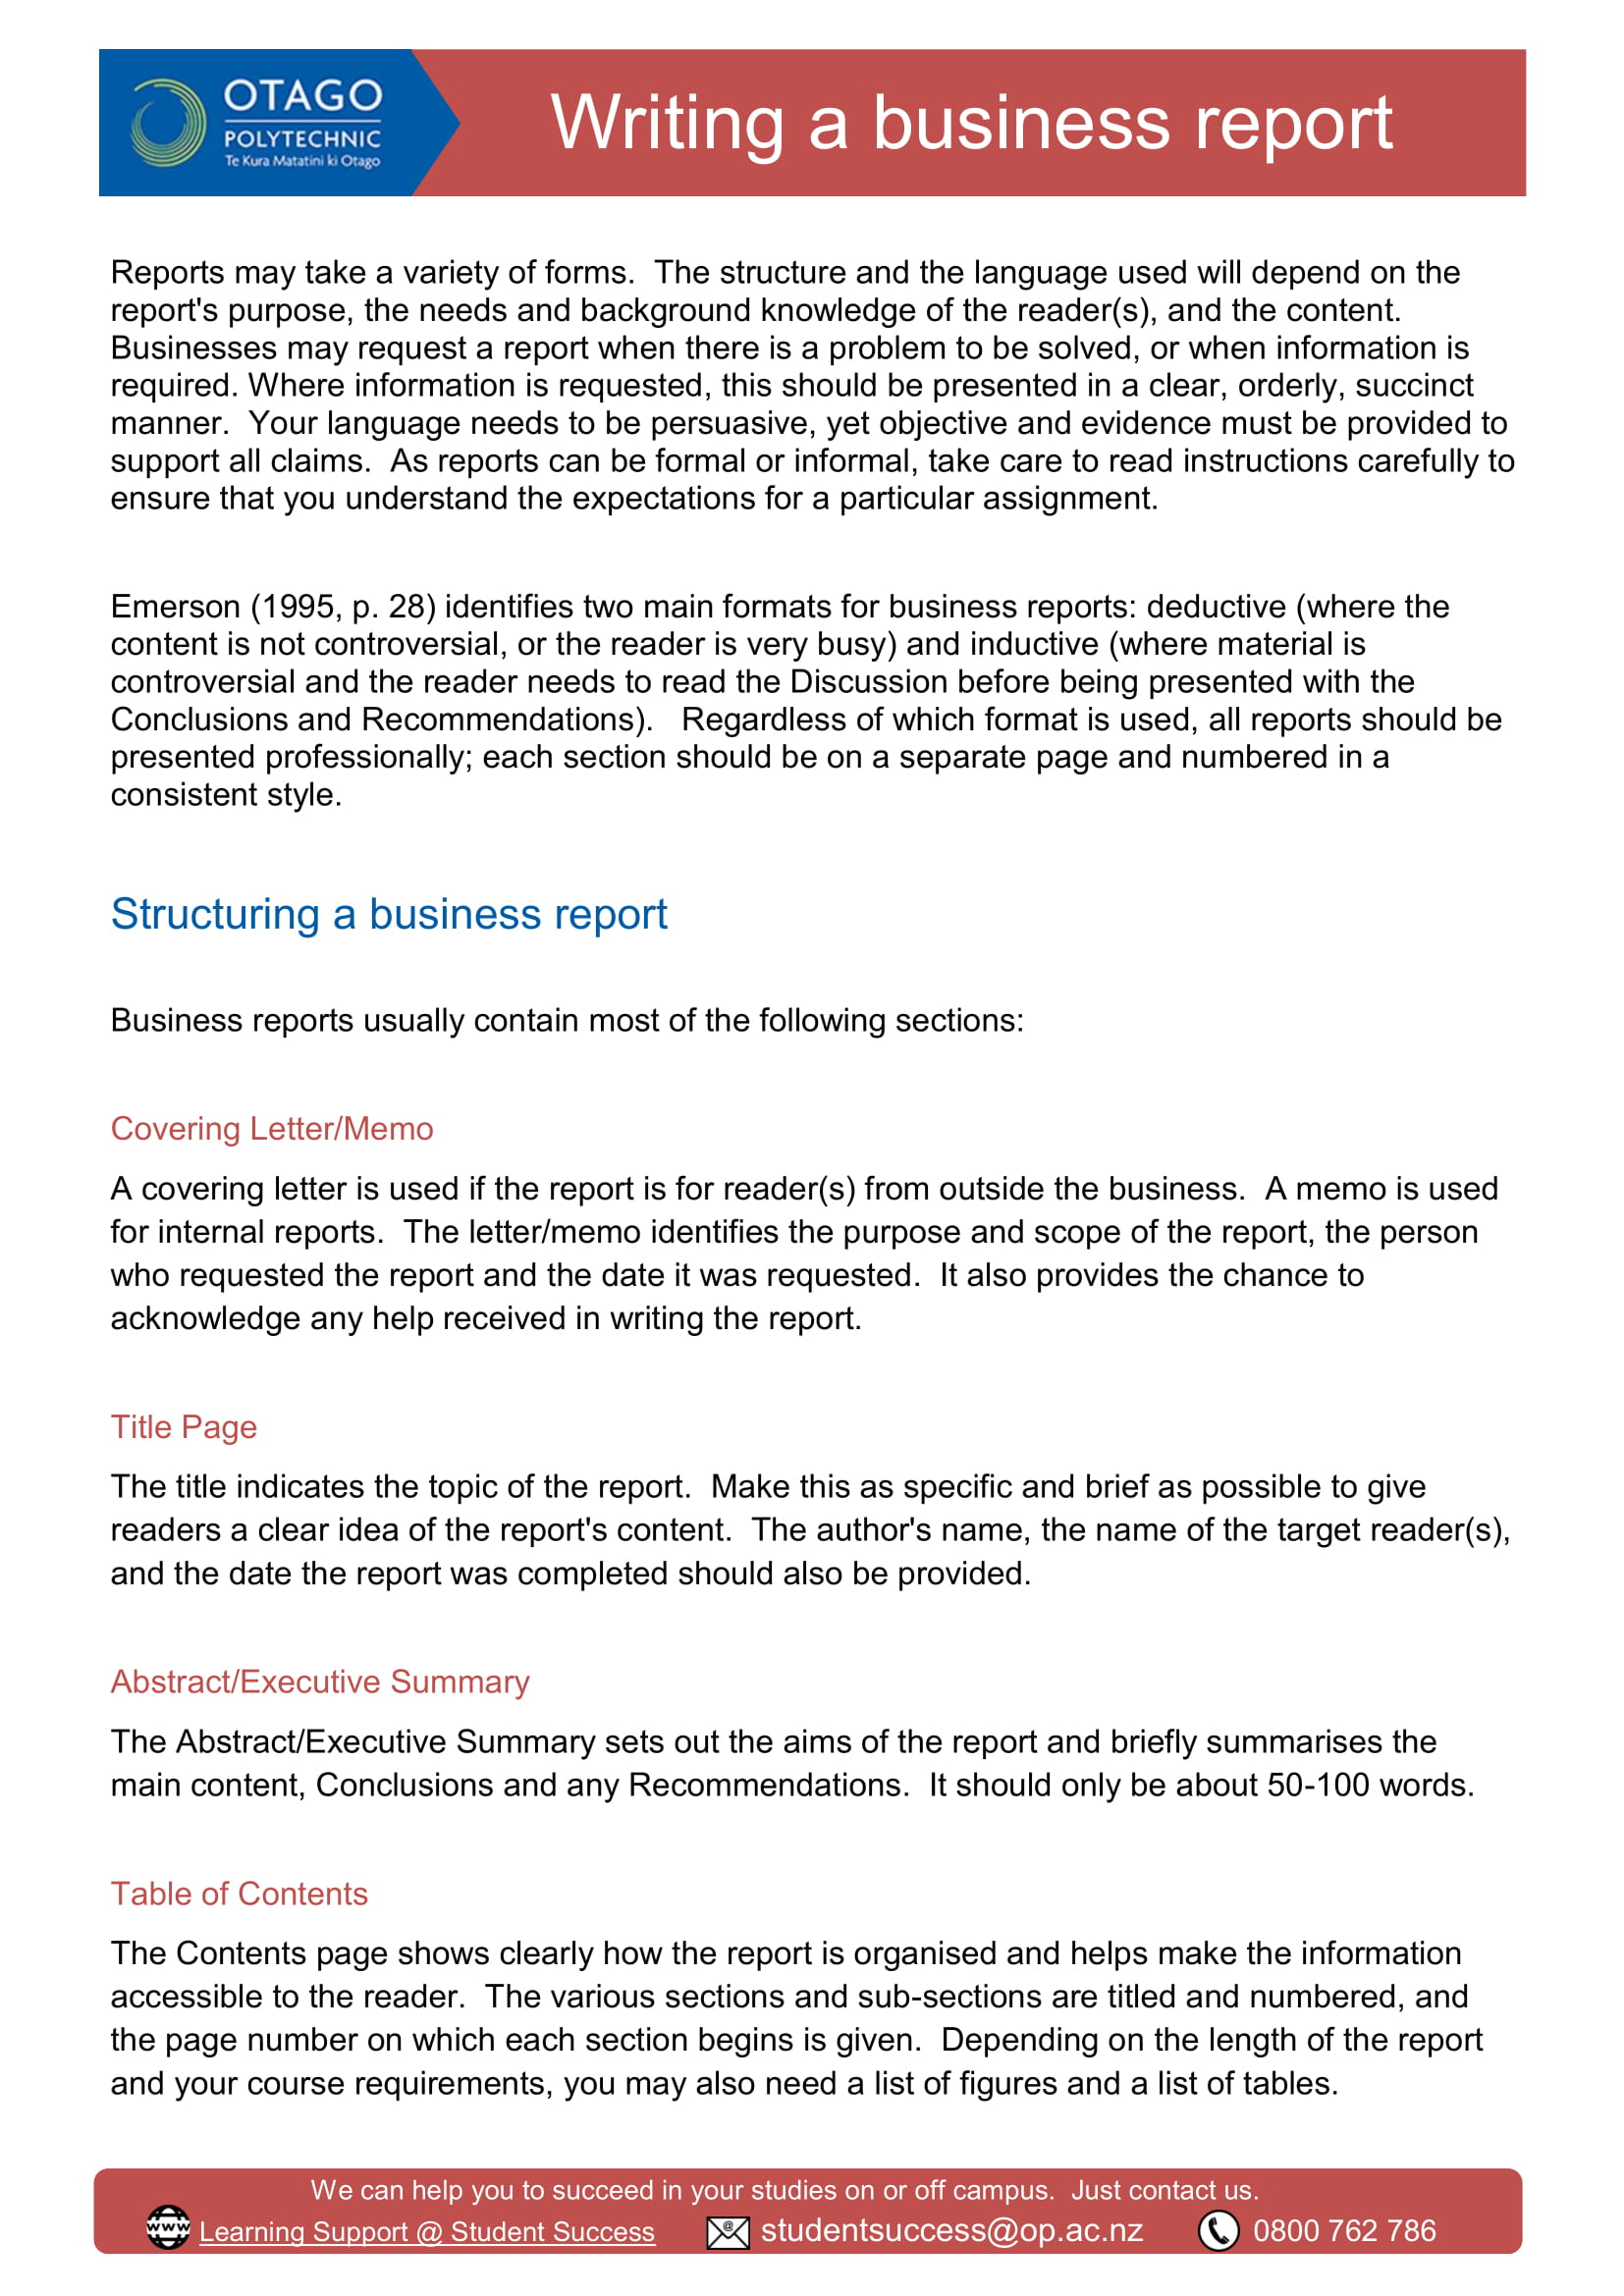 business report structure and format example 1